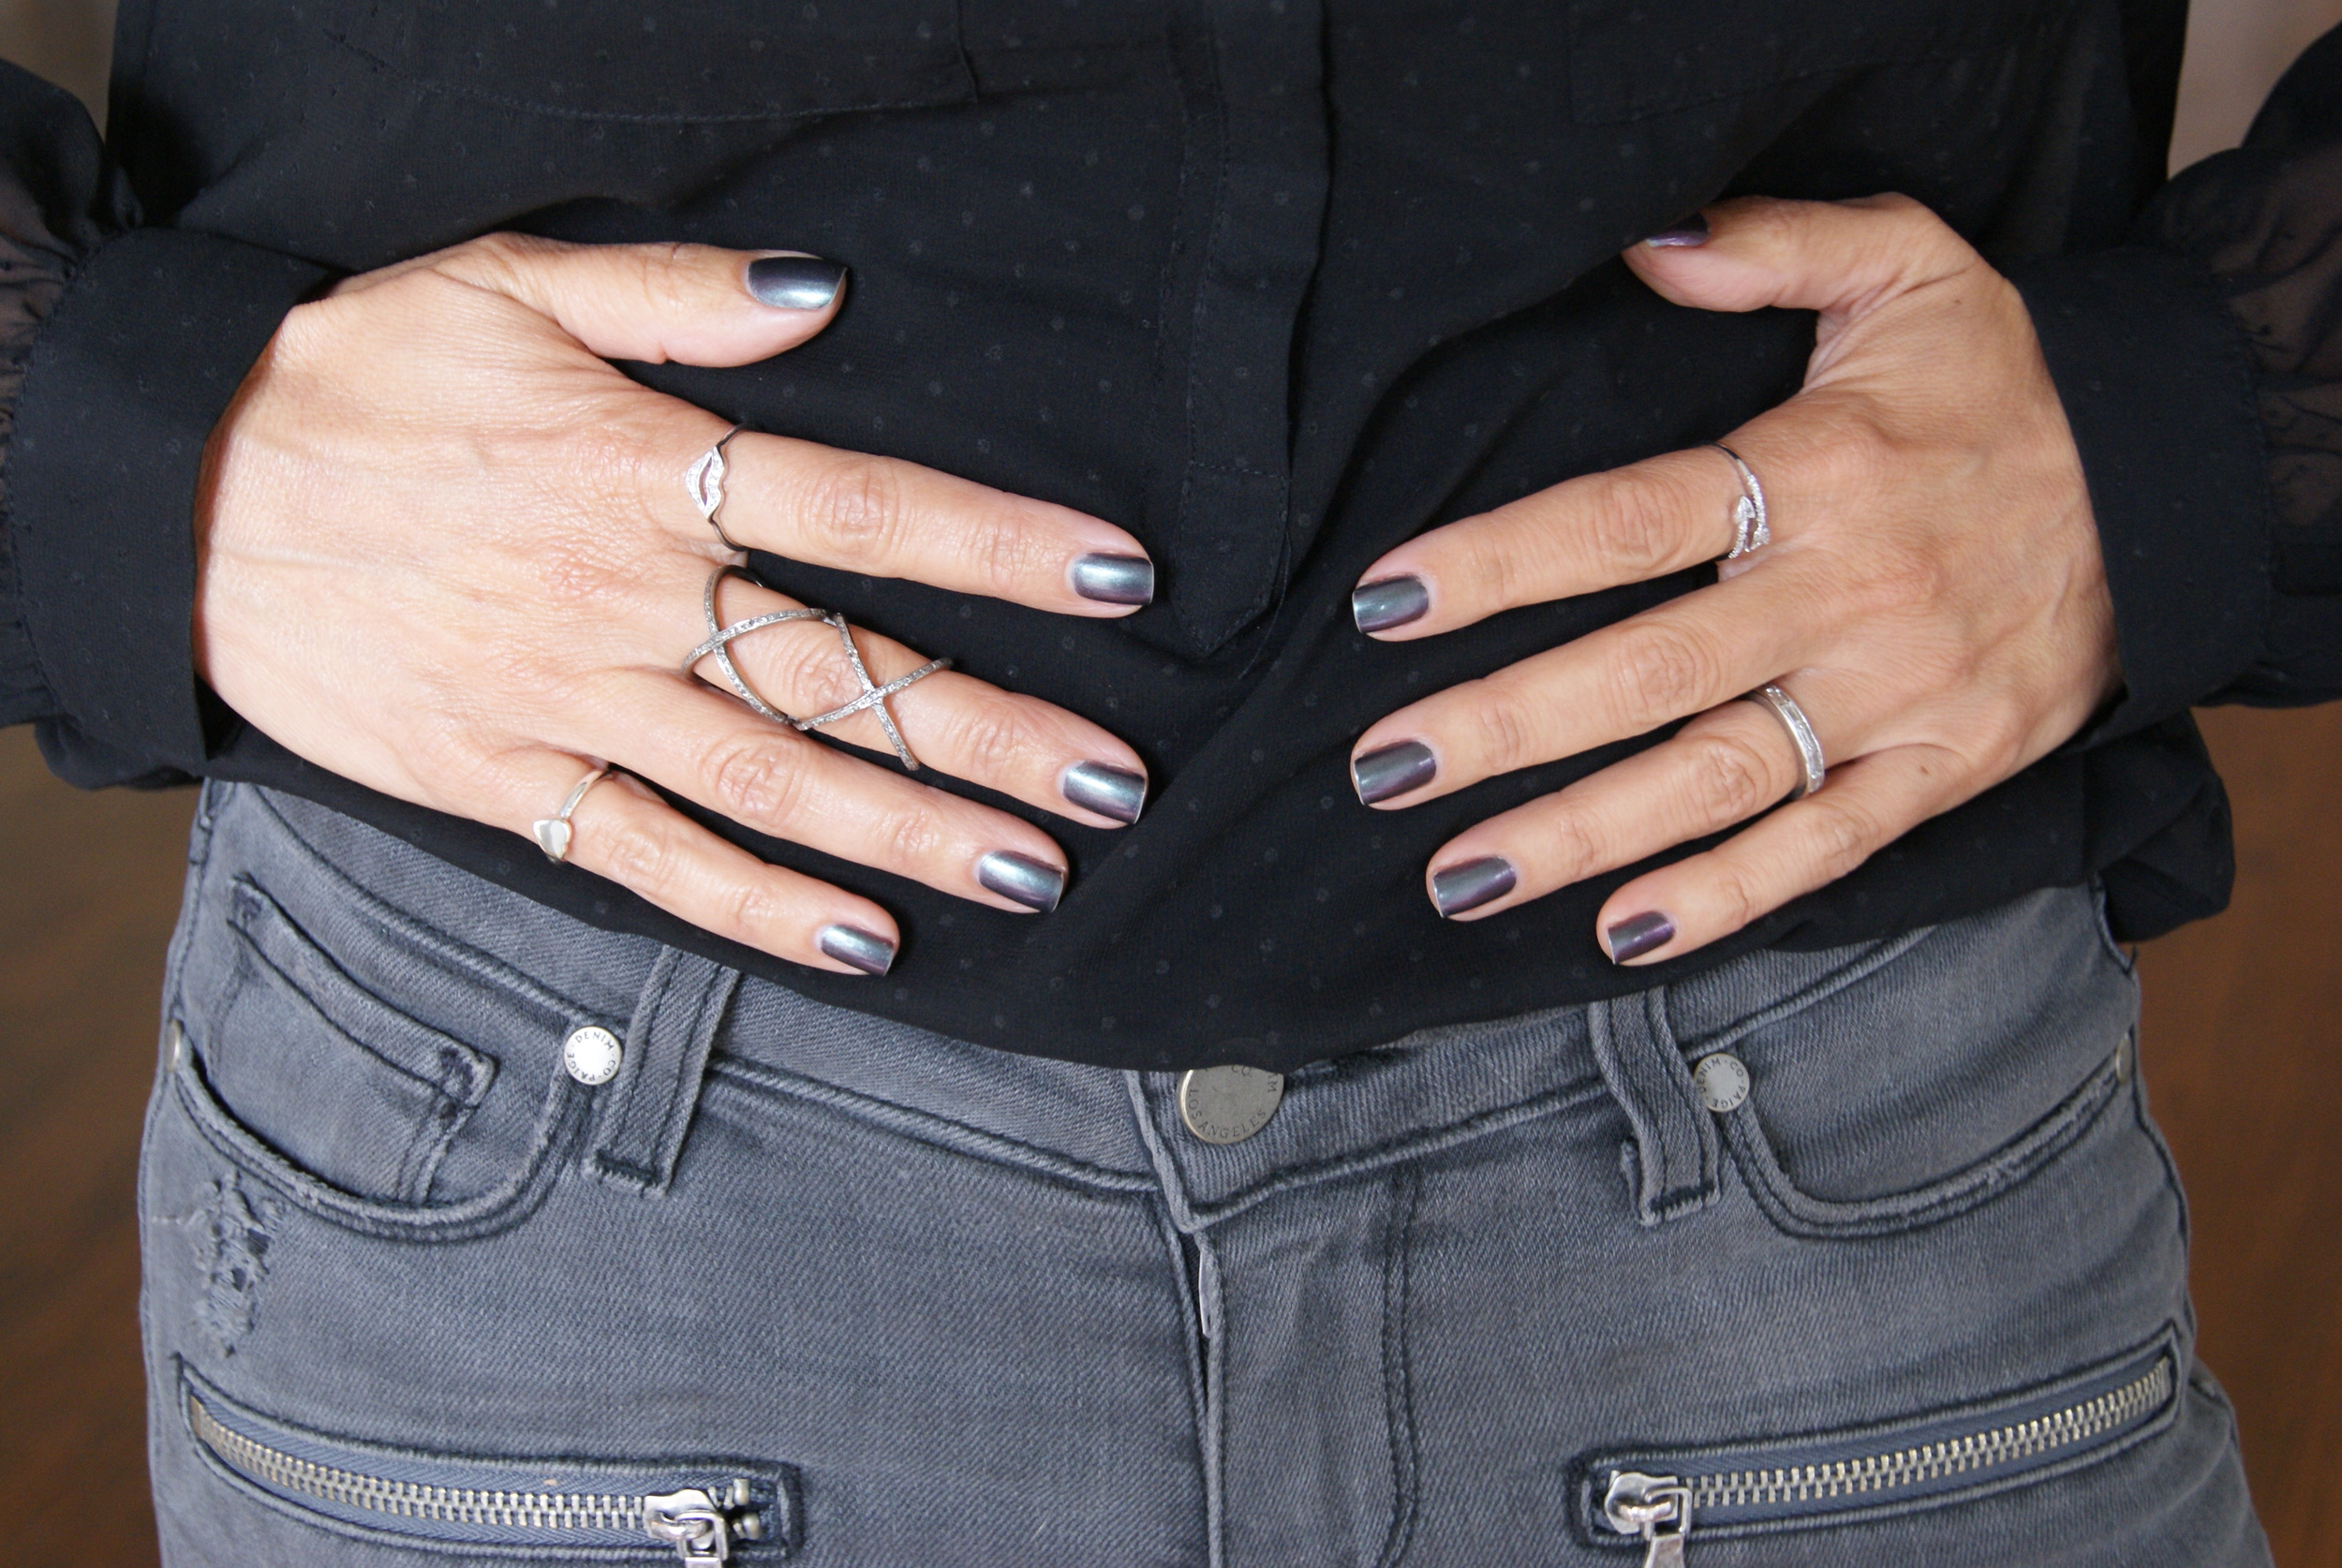 Double X ring and lips ring by Kelly Gerber Jewelry.